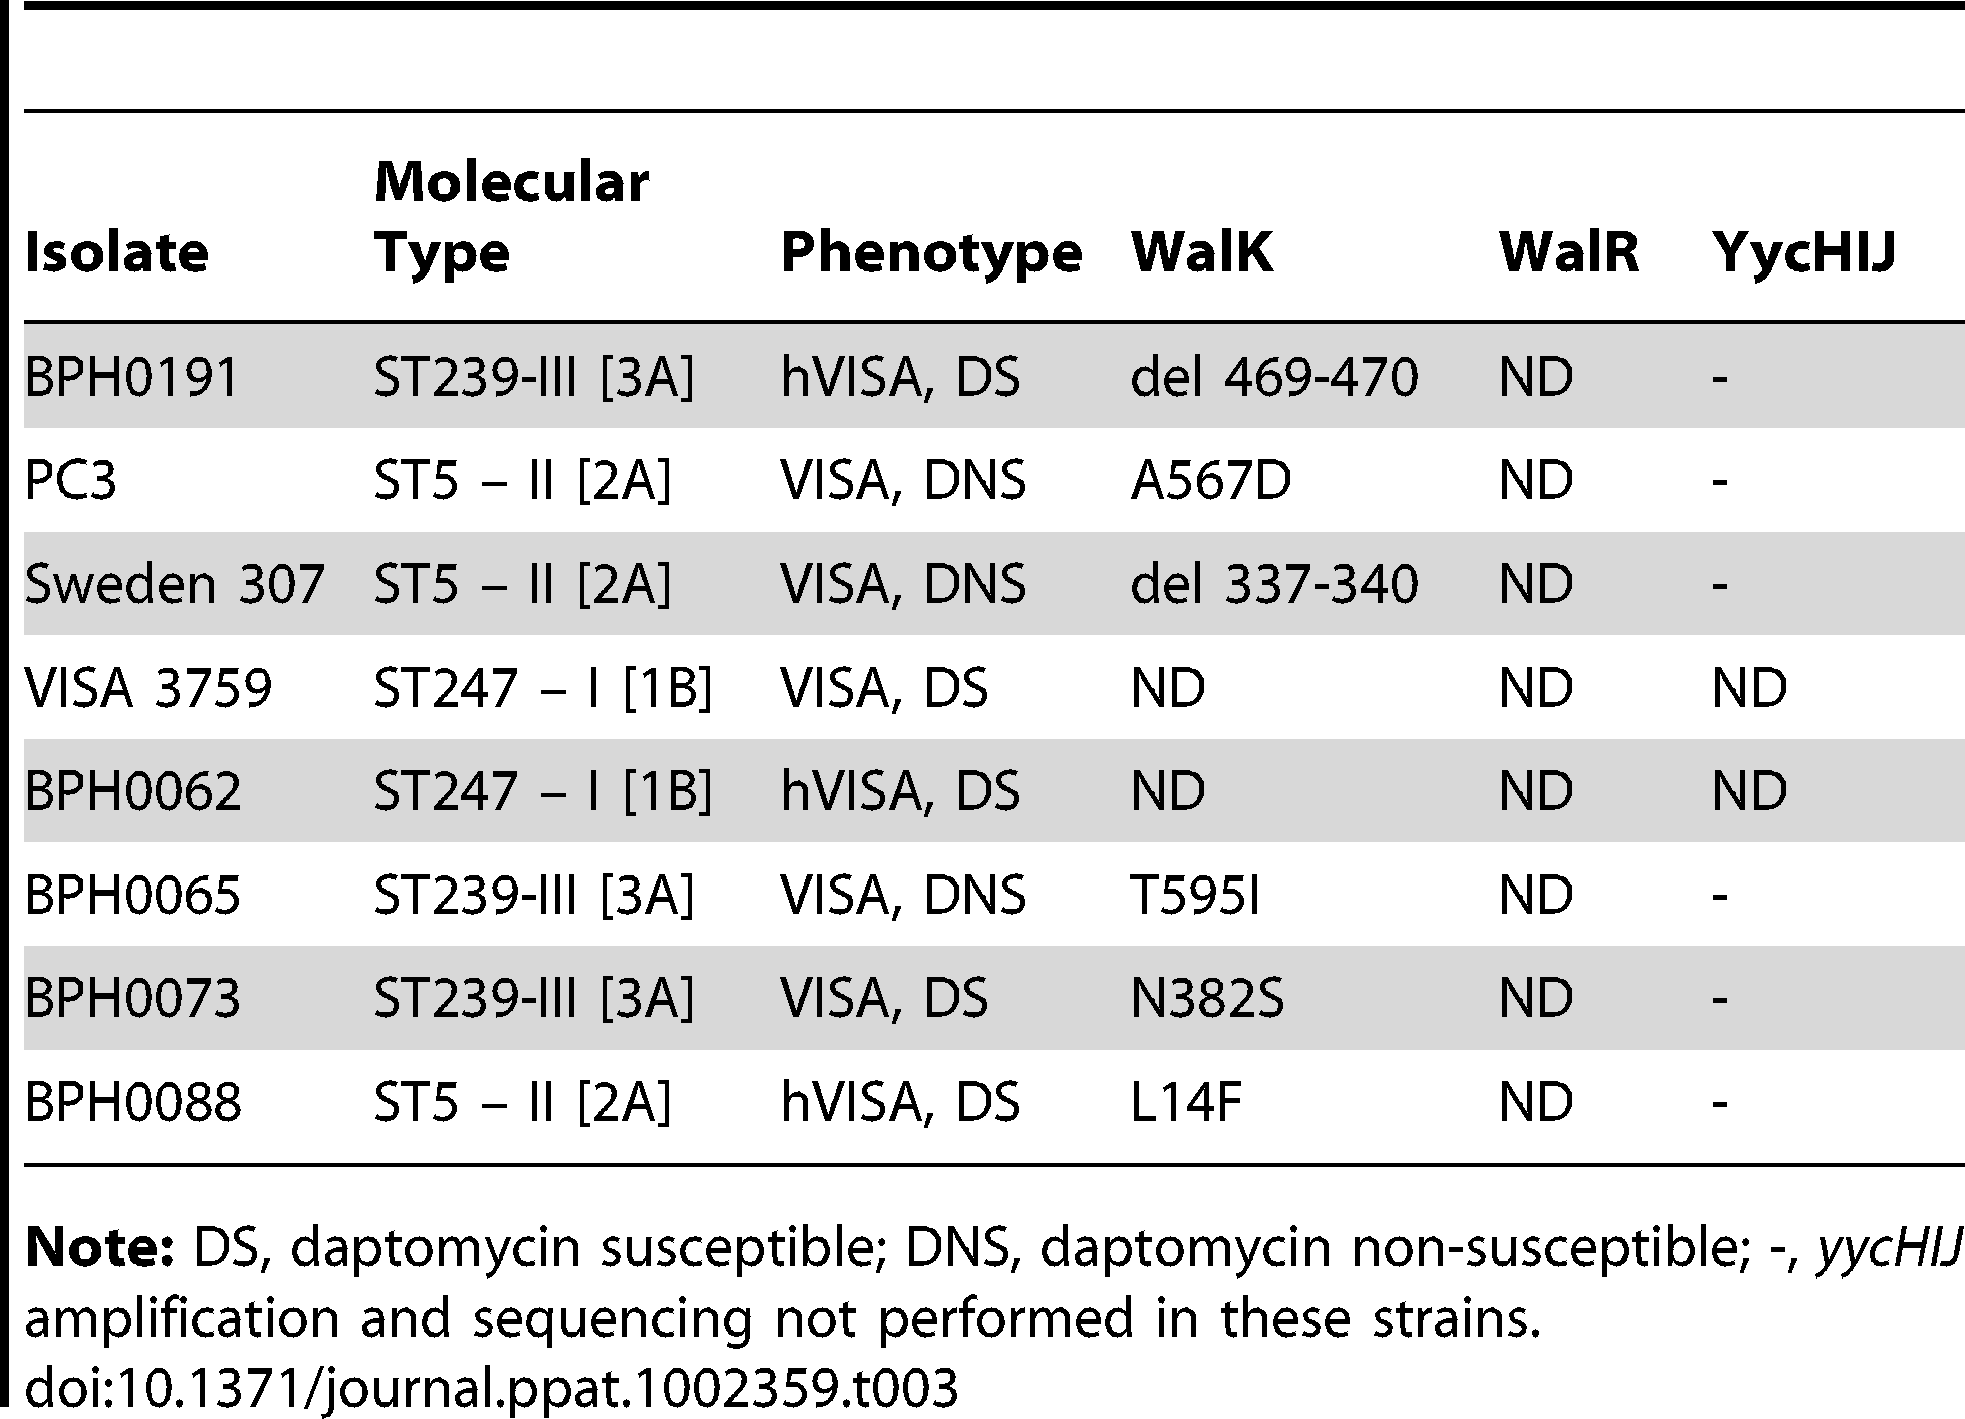 Screening for <i>walKR</i> mutations in unique (non-paired) strains.